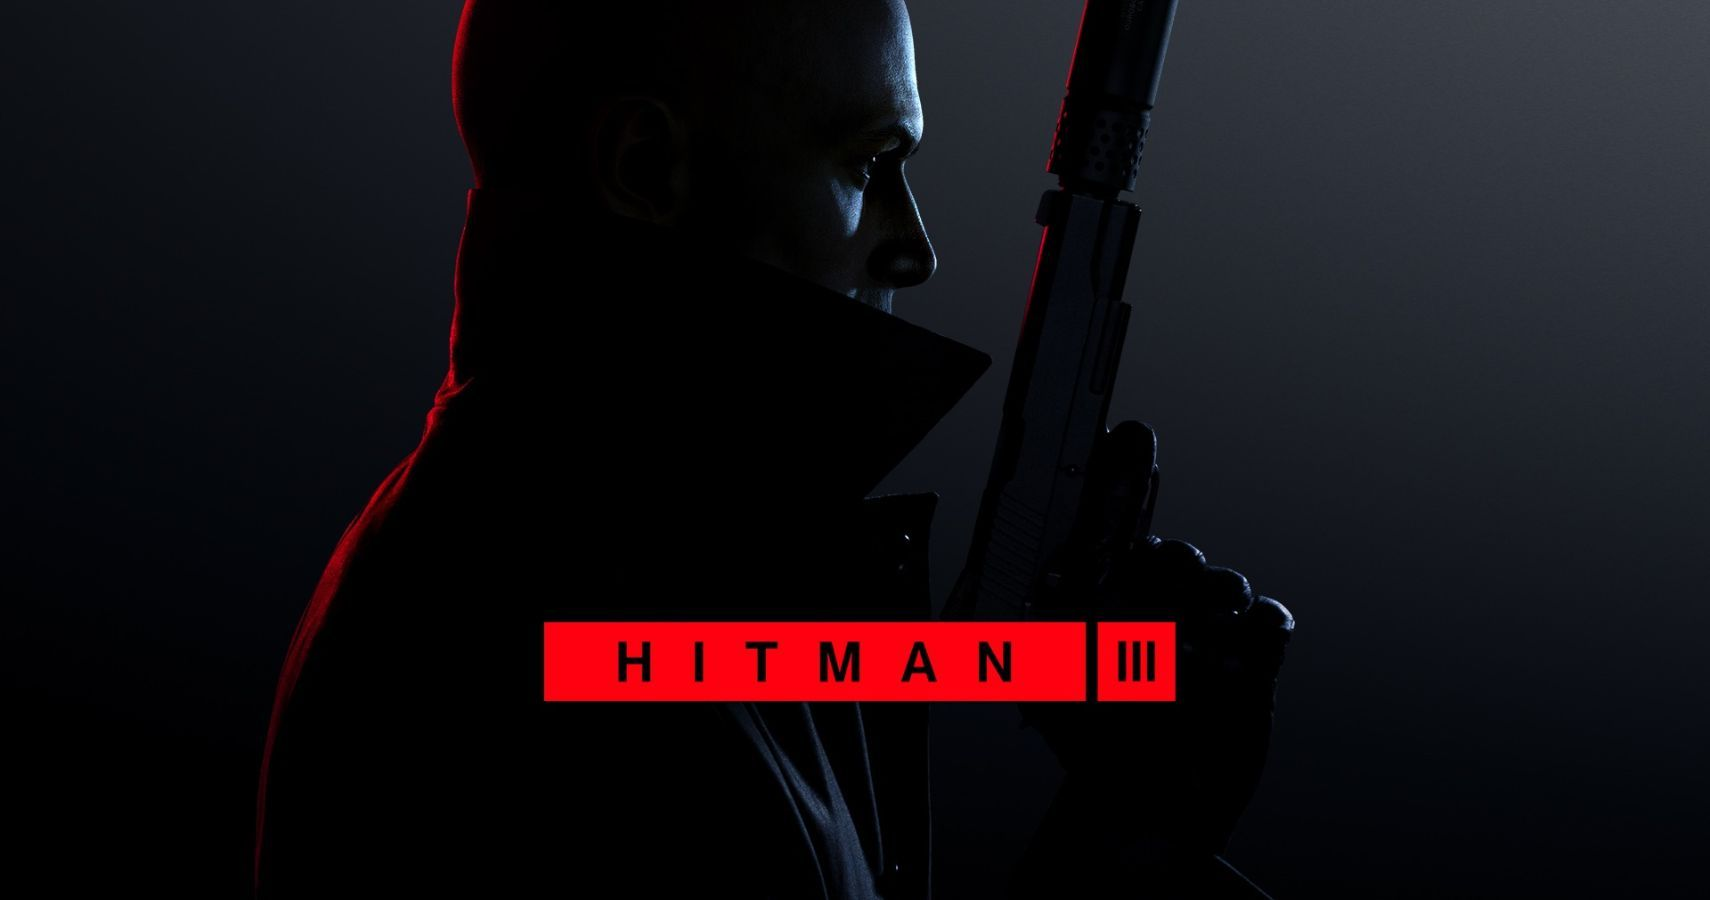 Hitman 3 Had The Biggest Digital Launch In Series History